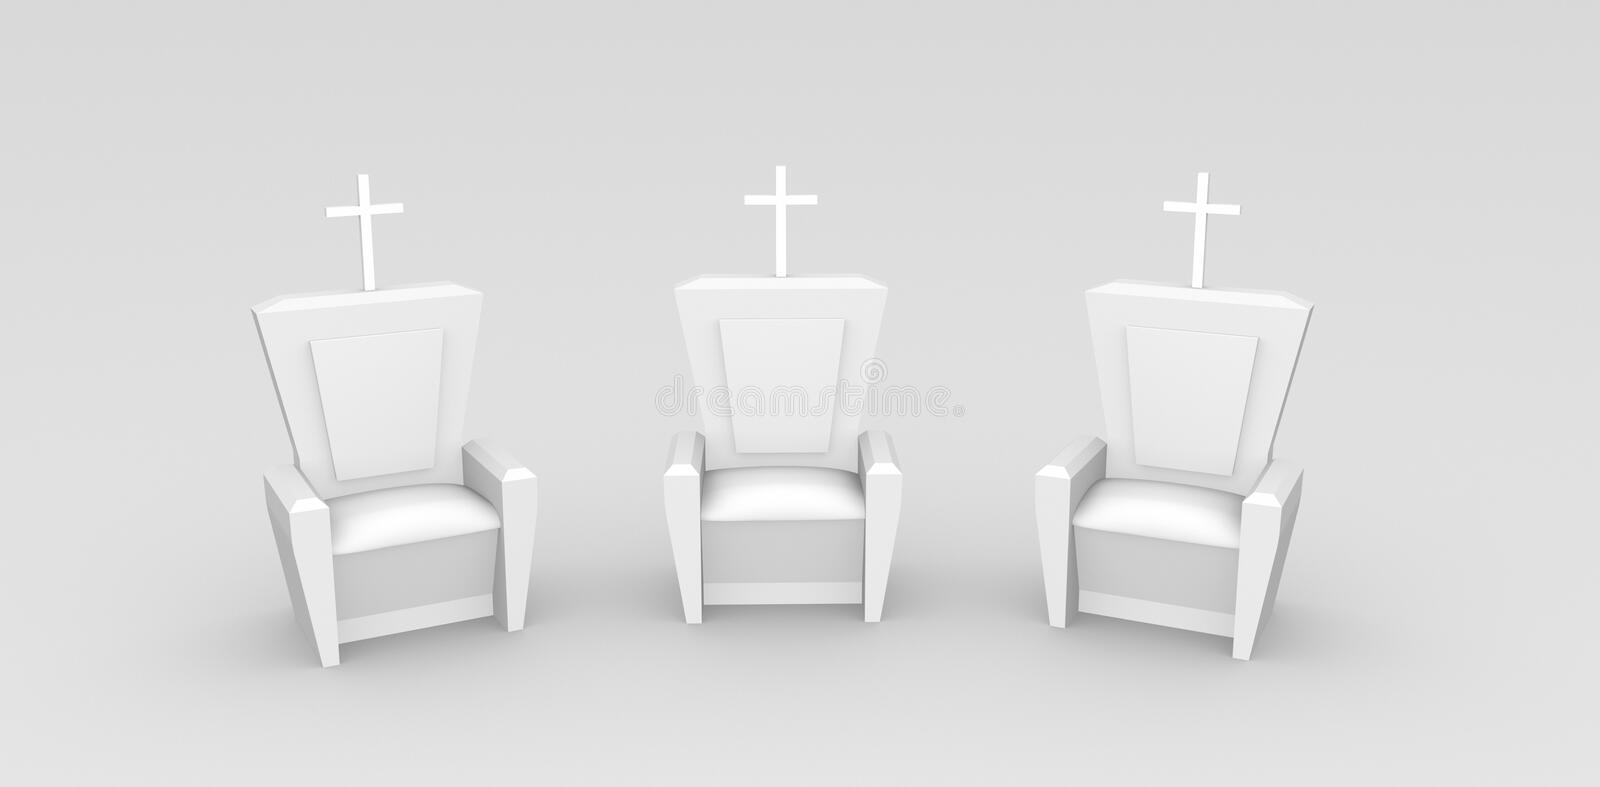 3 Three Throne With Christian Cross Illustration stock images